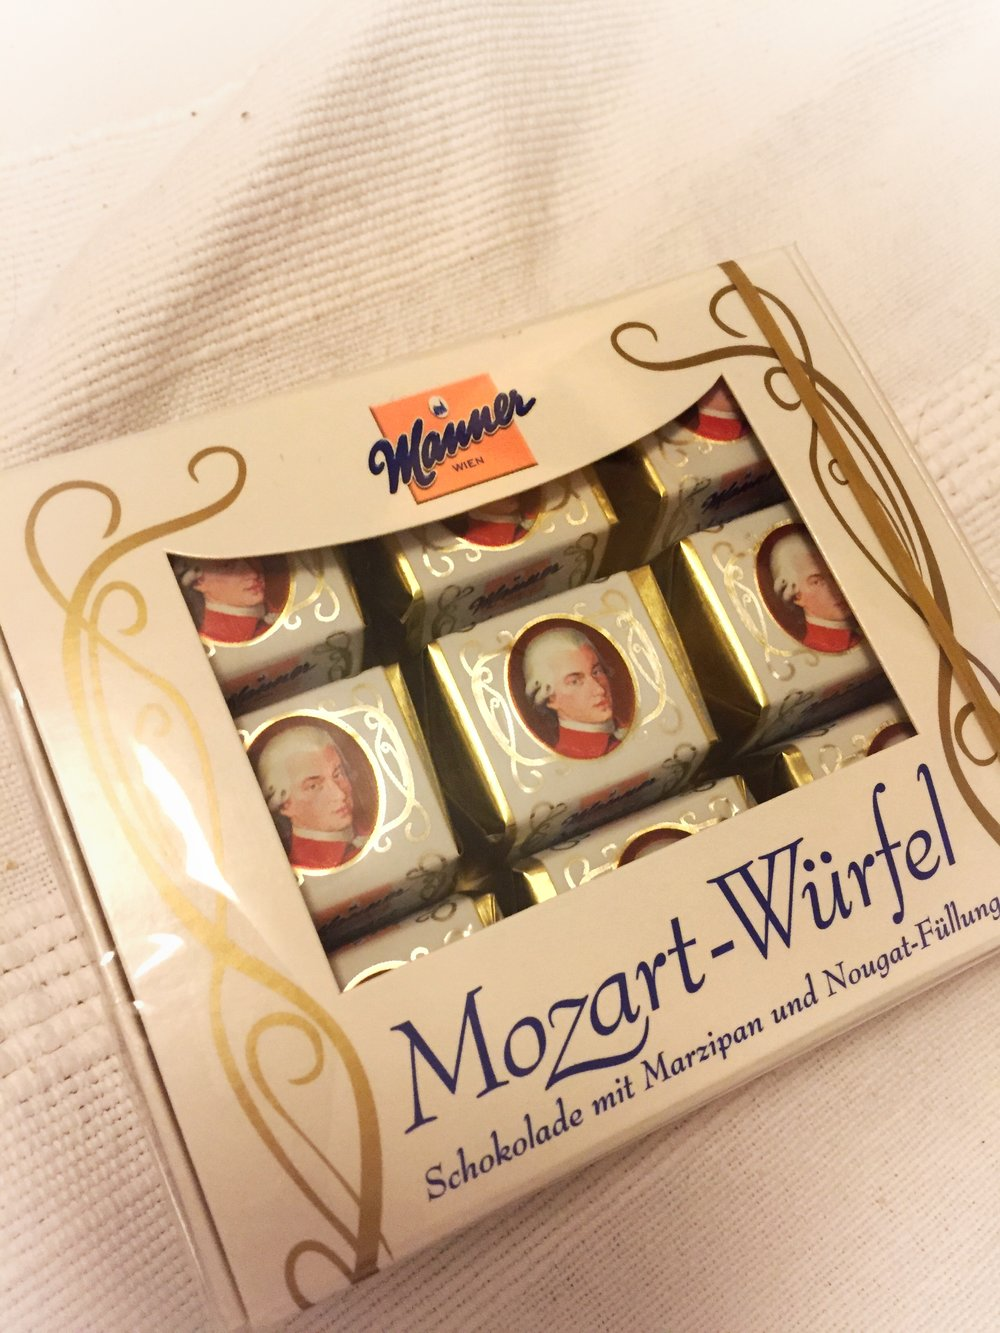 local Manner Mozart-Würfel marzipan chocolates (Vienna)